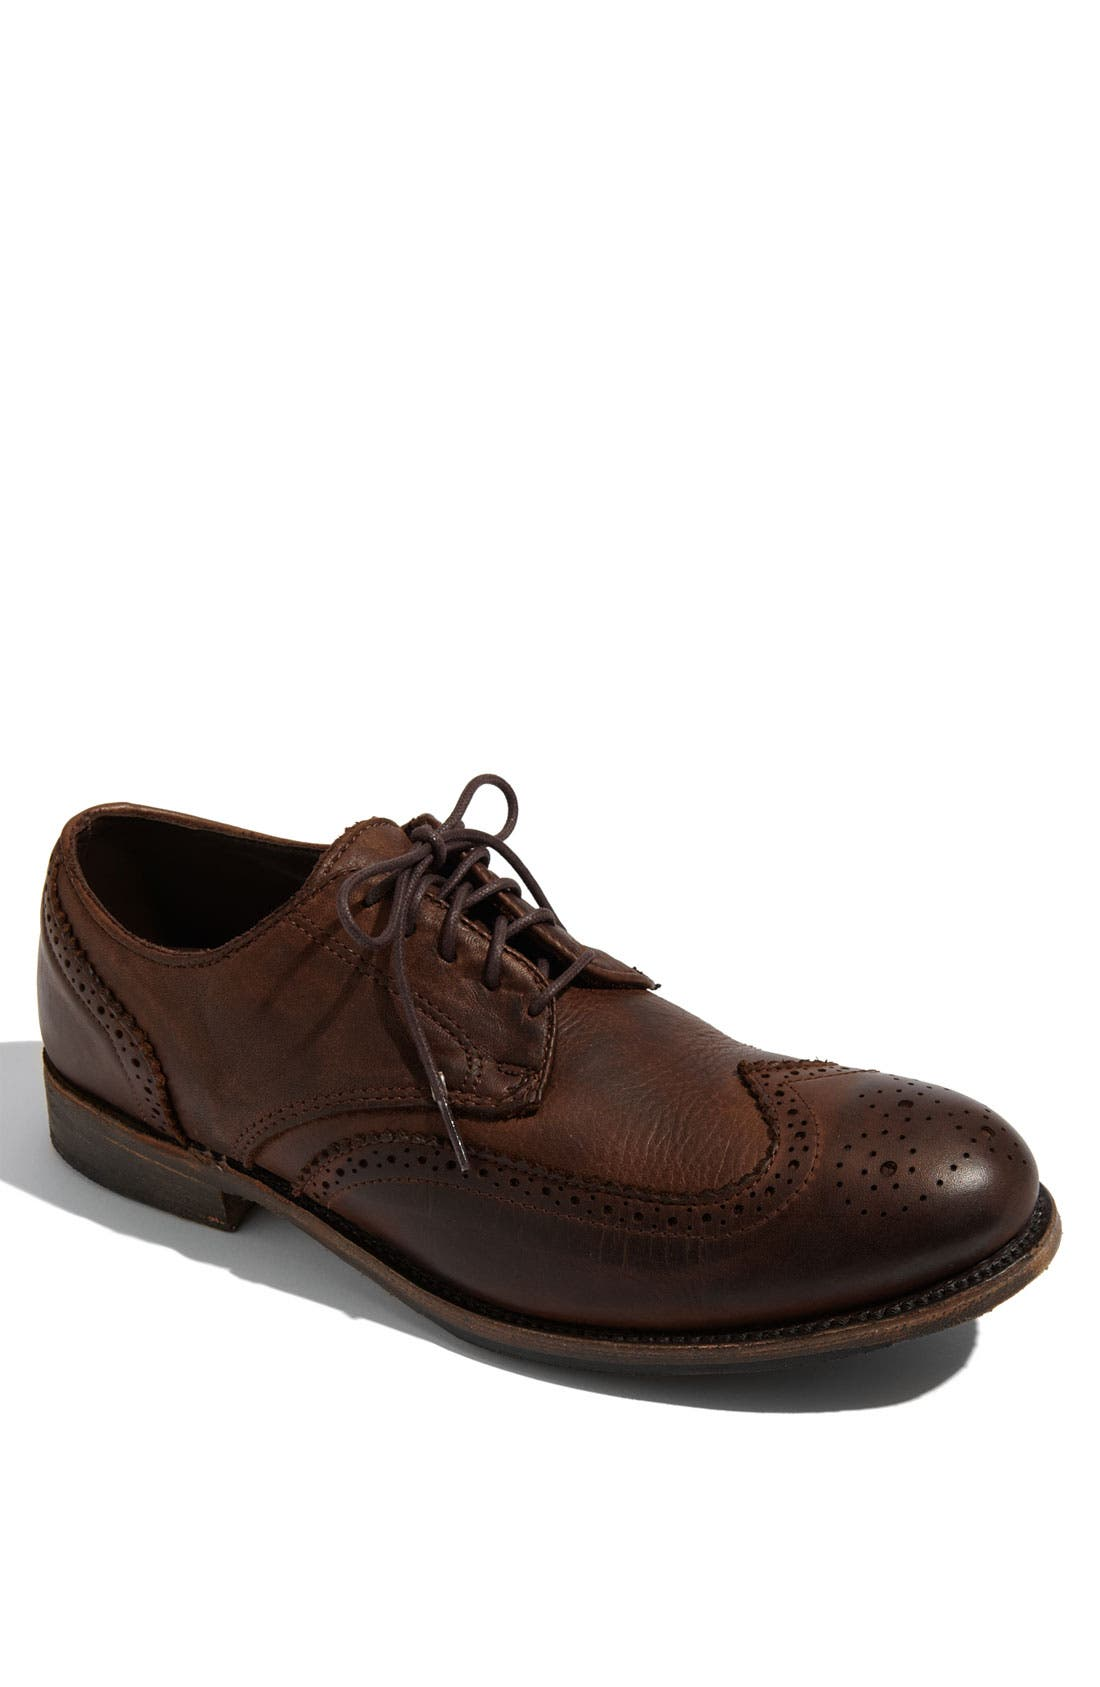 Main Image - Vintage Shoe Company 'Langdon' Wingtip Oxford